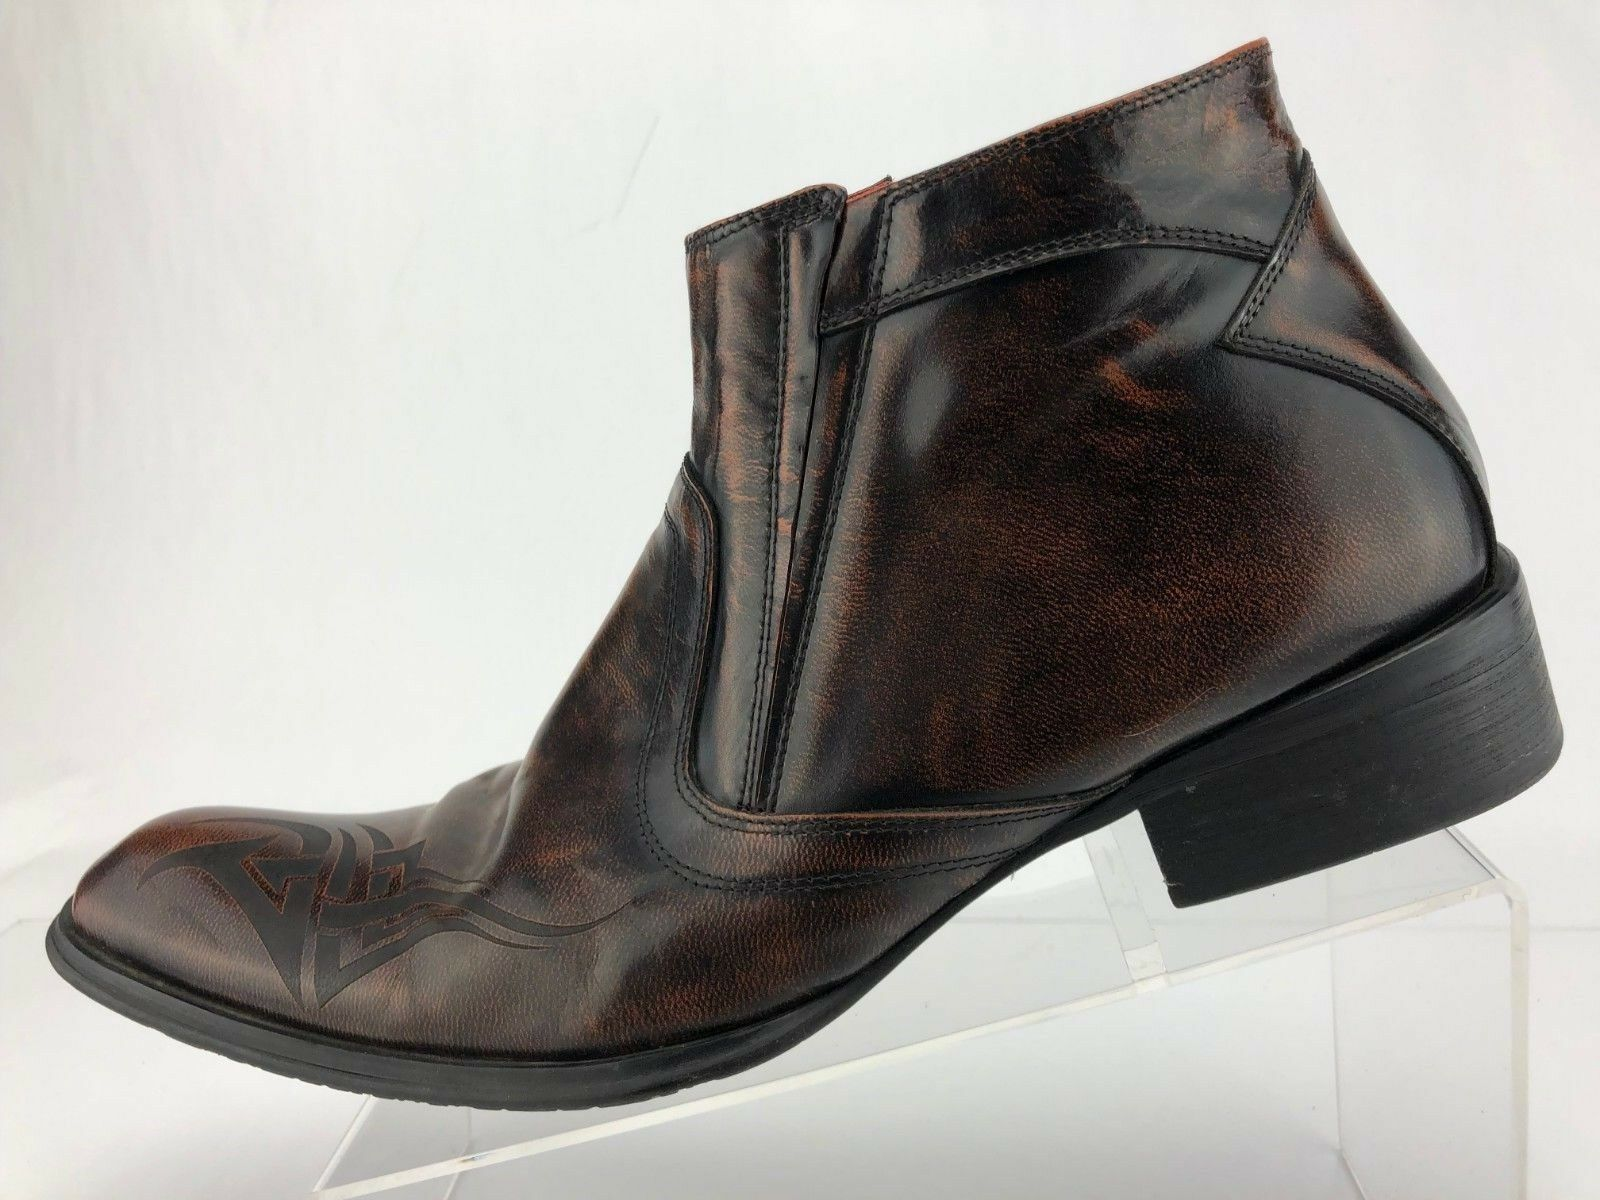 Robert Wayne Disturb Ankle bottes marron Leather Leather Leather Side Zip Casual chaussures Mens Sz 11 71a0aa